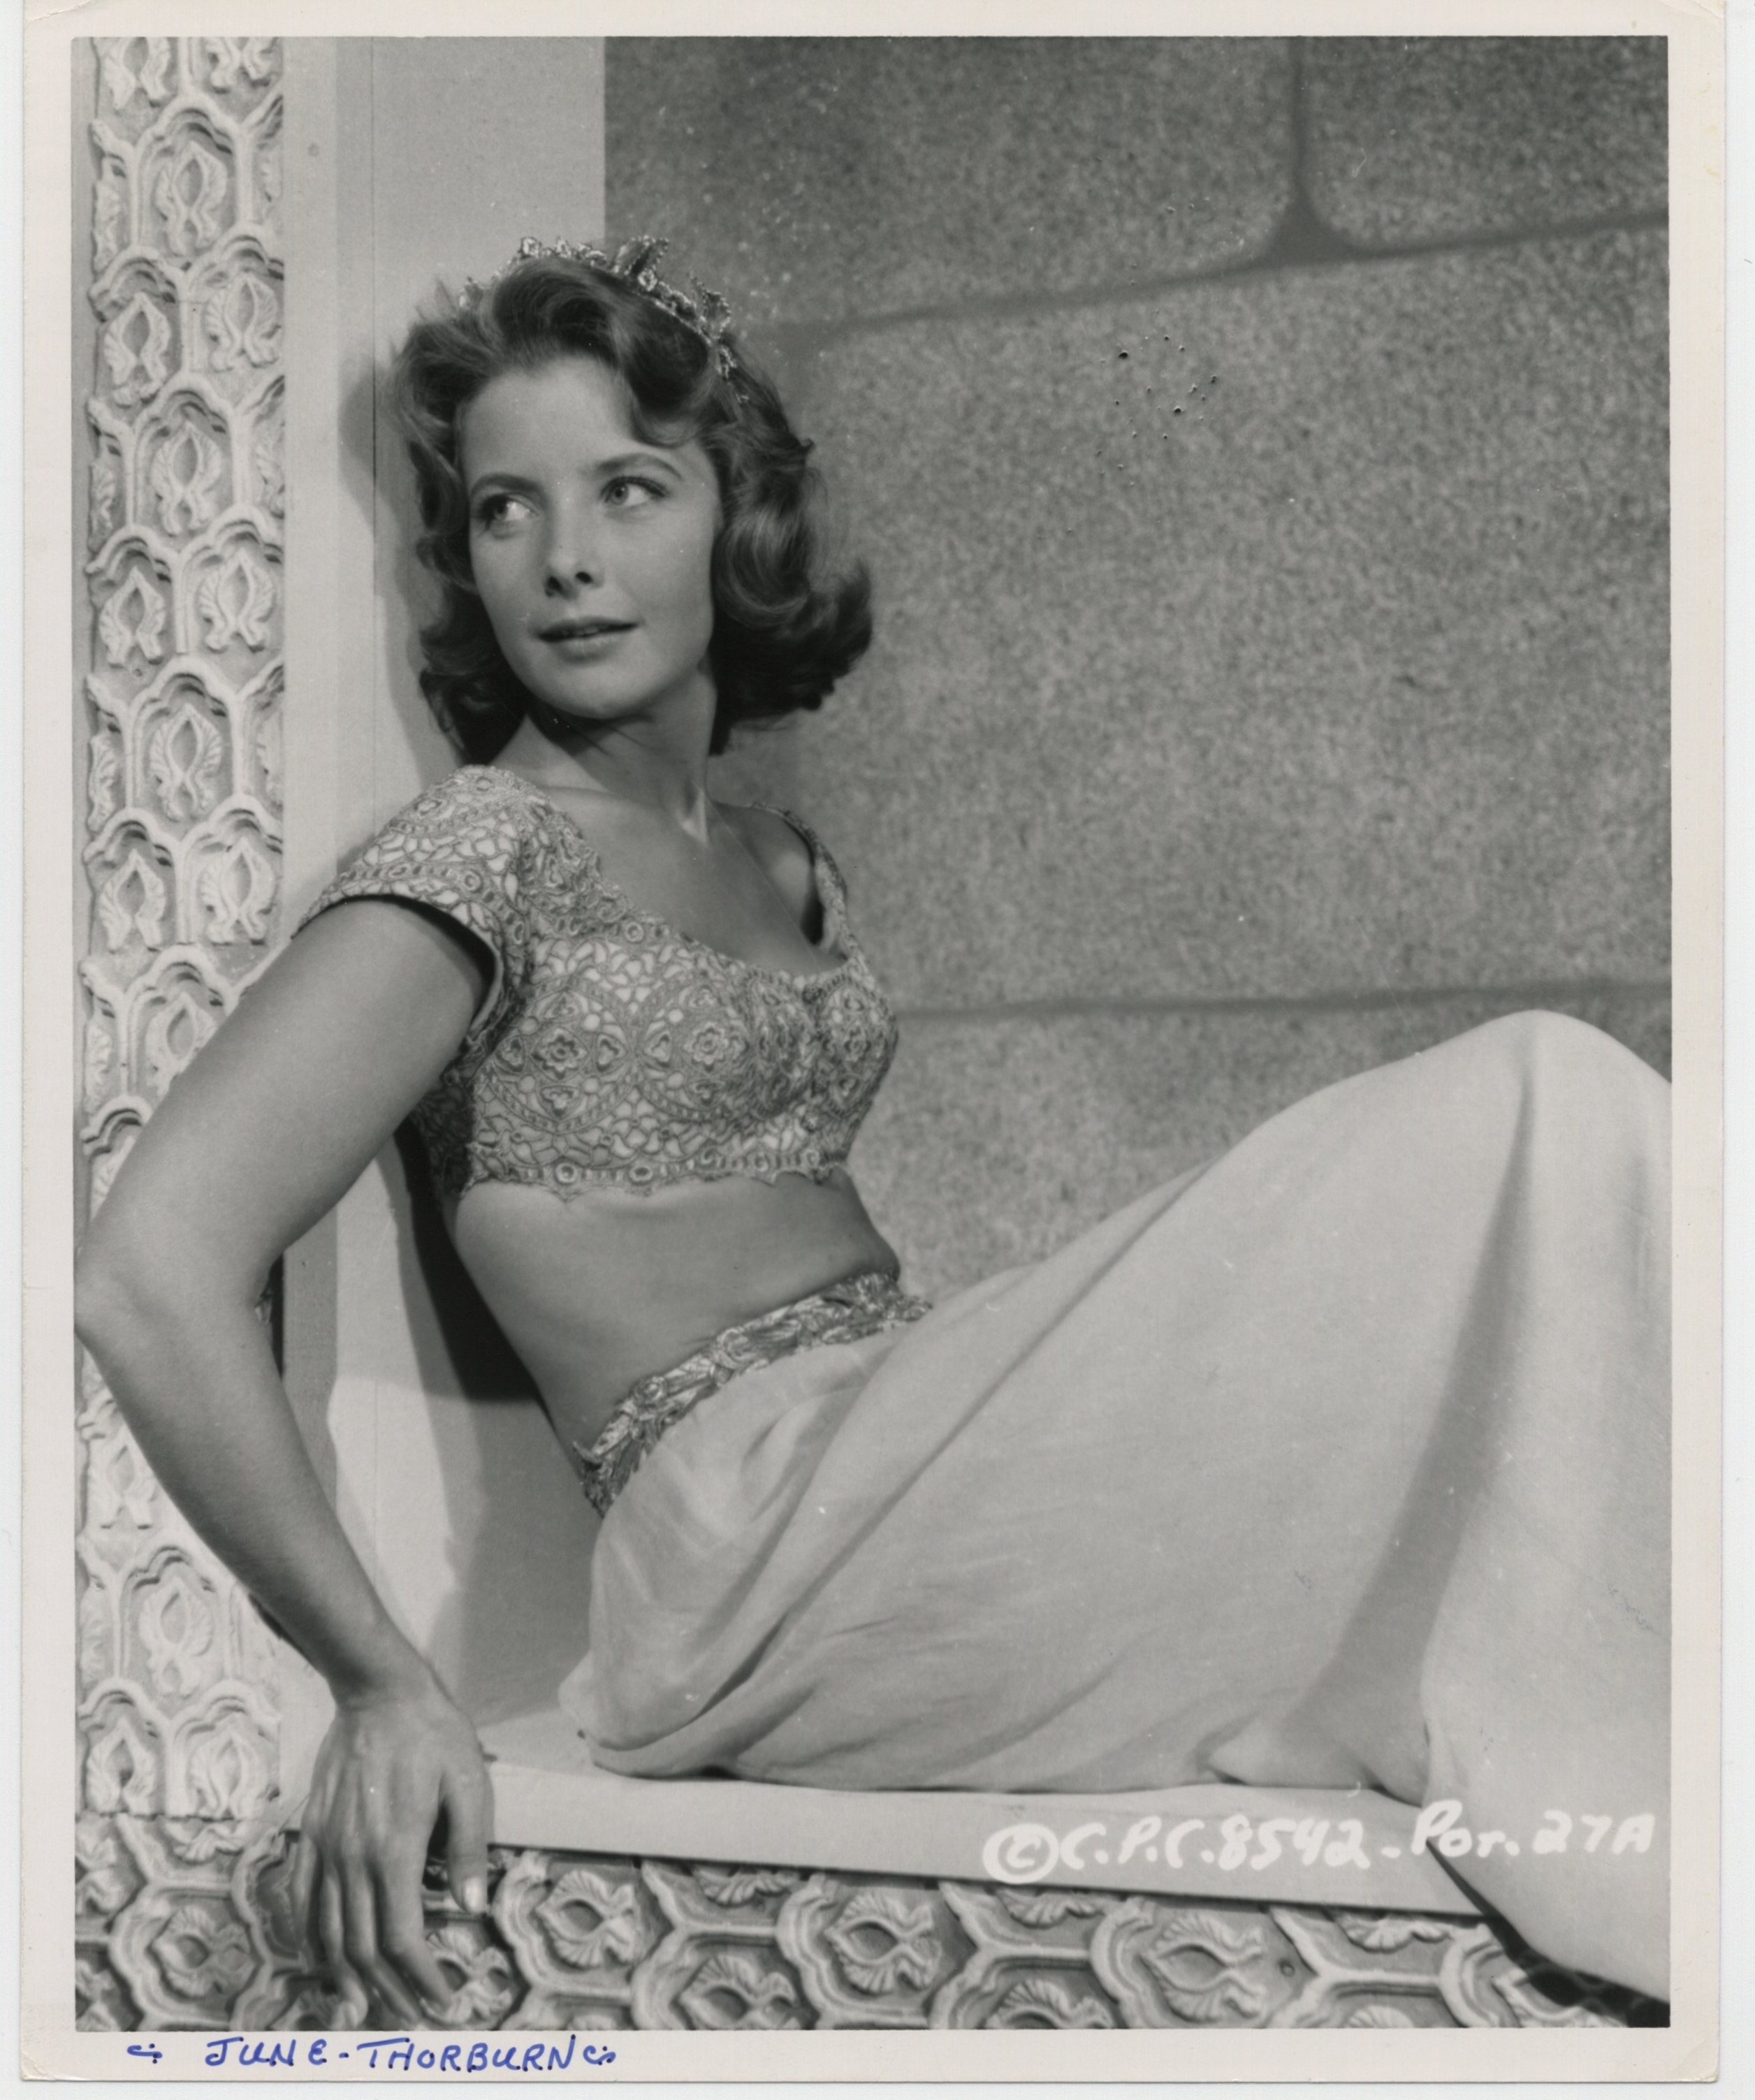 June Thorburn in The 3 Worlds of Gulliver (1960)